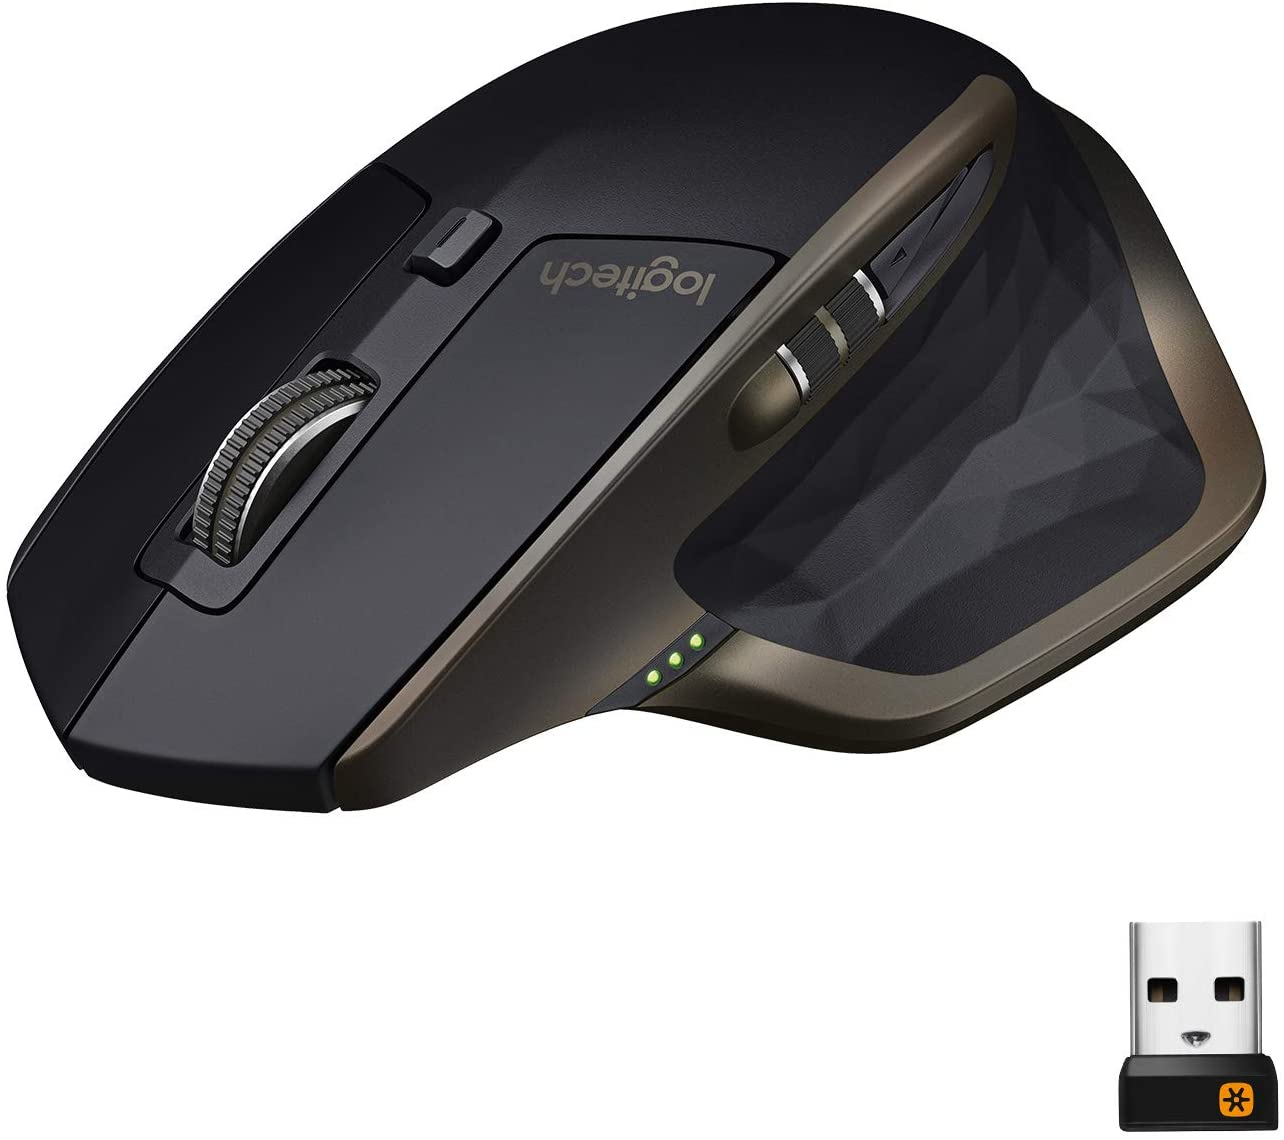 Logitech MX Master Wireless Mouse  Highprecision Sensor SpeedAdaptive Scroll Wheel EasySwitch up to 3 Devices  Meteorite Black at Kapruka Online for specialGifts